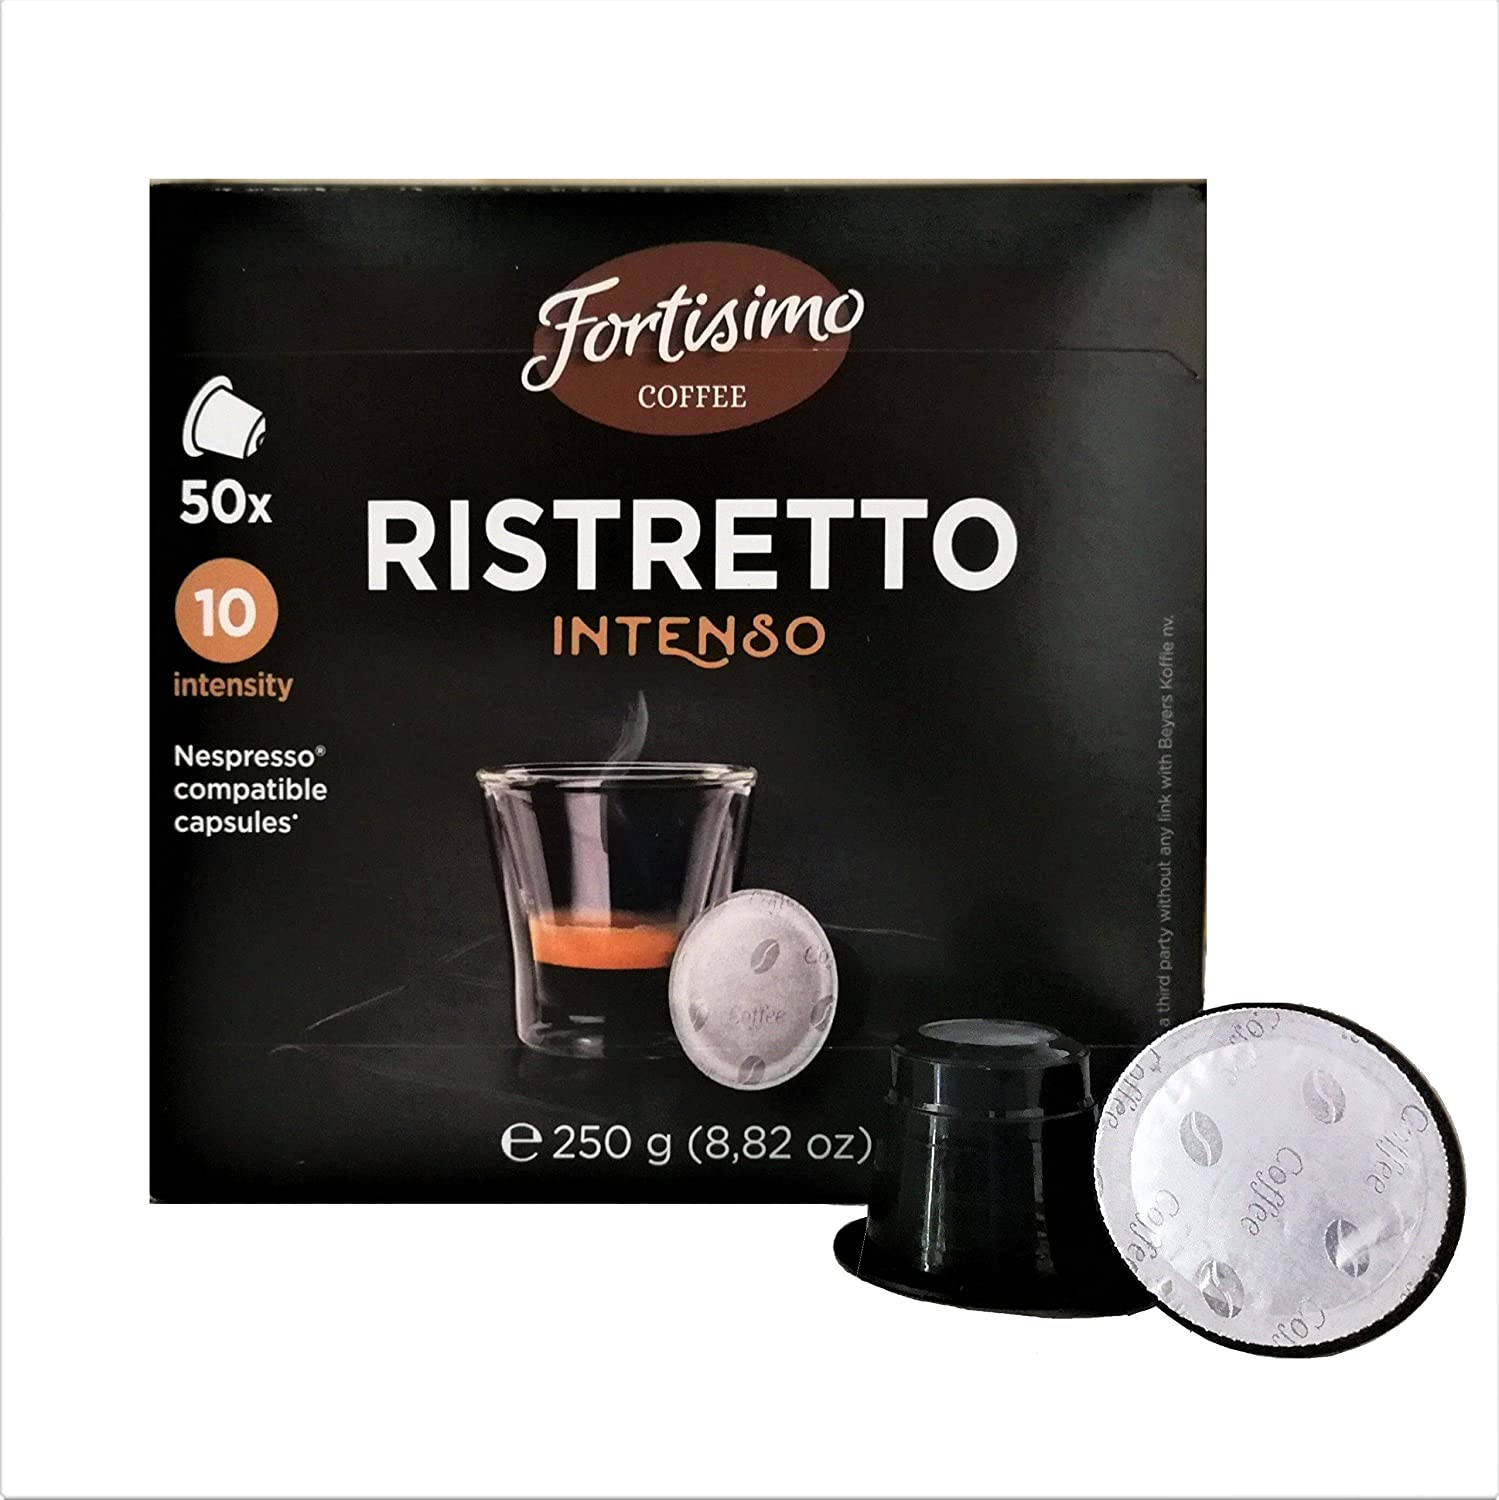 Fortisimo RISTRETTO Intenso Nespresso Compatible Capsule (two pack): Amazon.com: Grocery & Gourmet Food